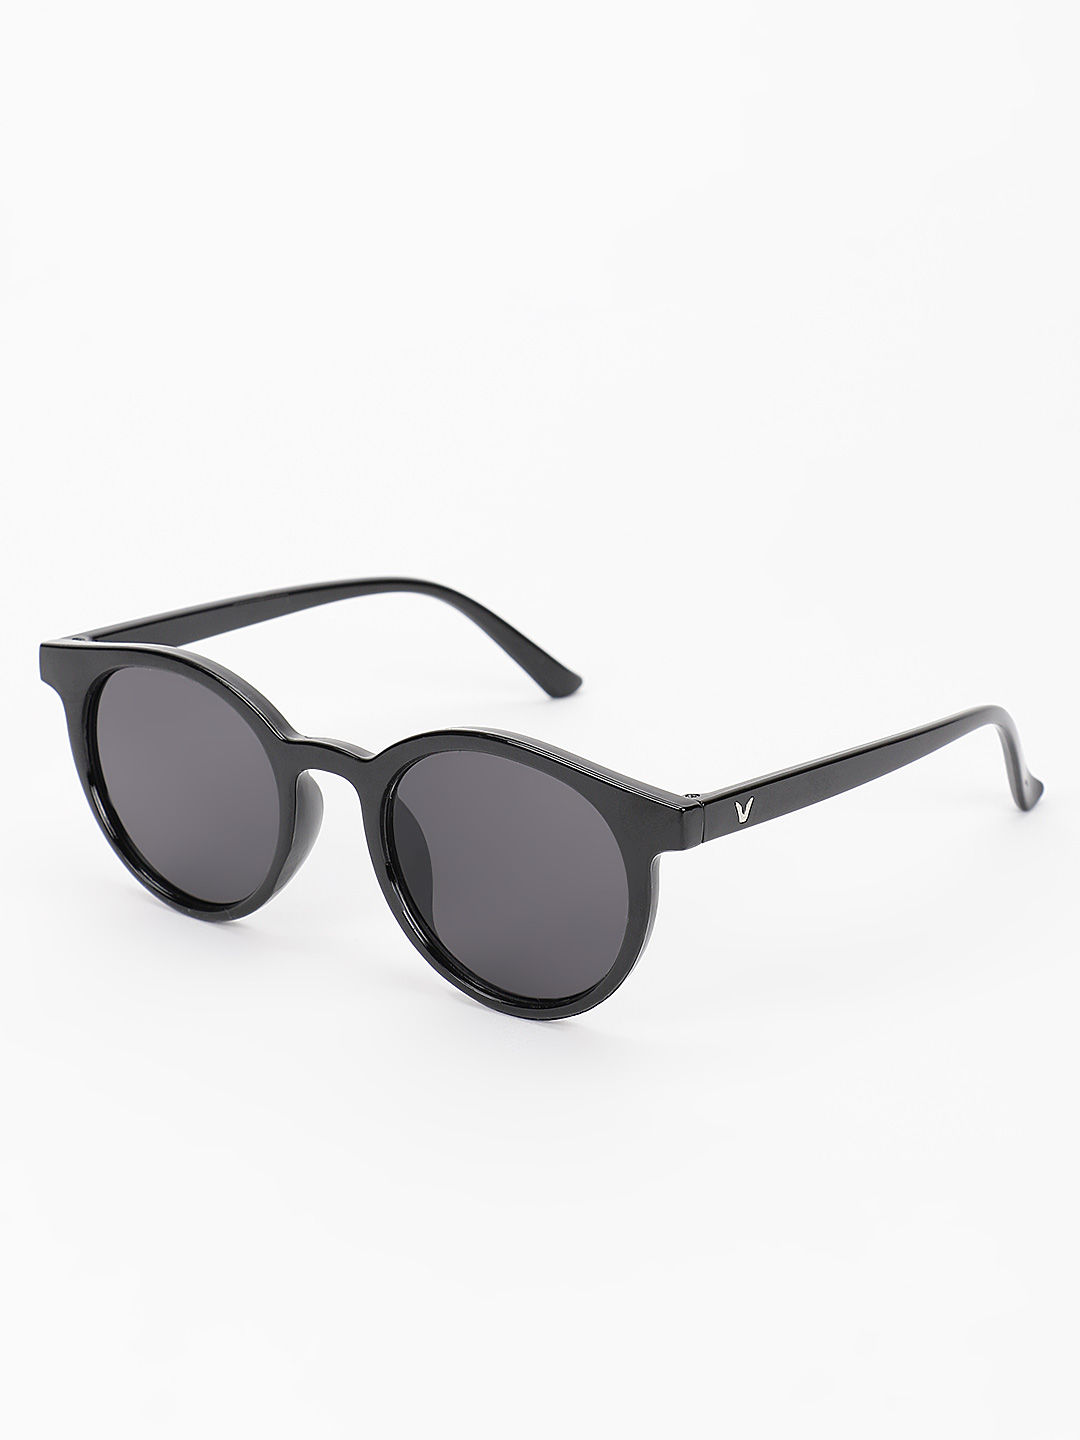 Pataaka Black Coloured Lens Round Sunglasses 1